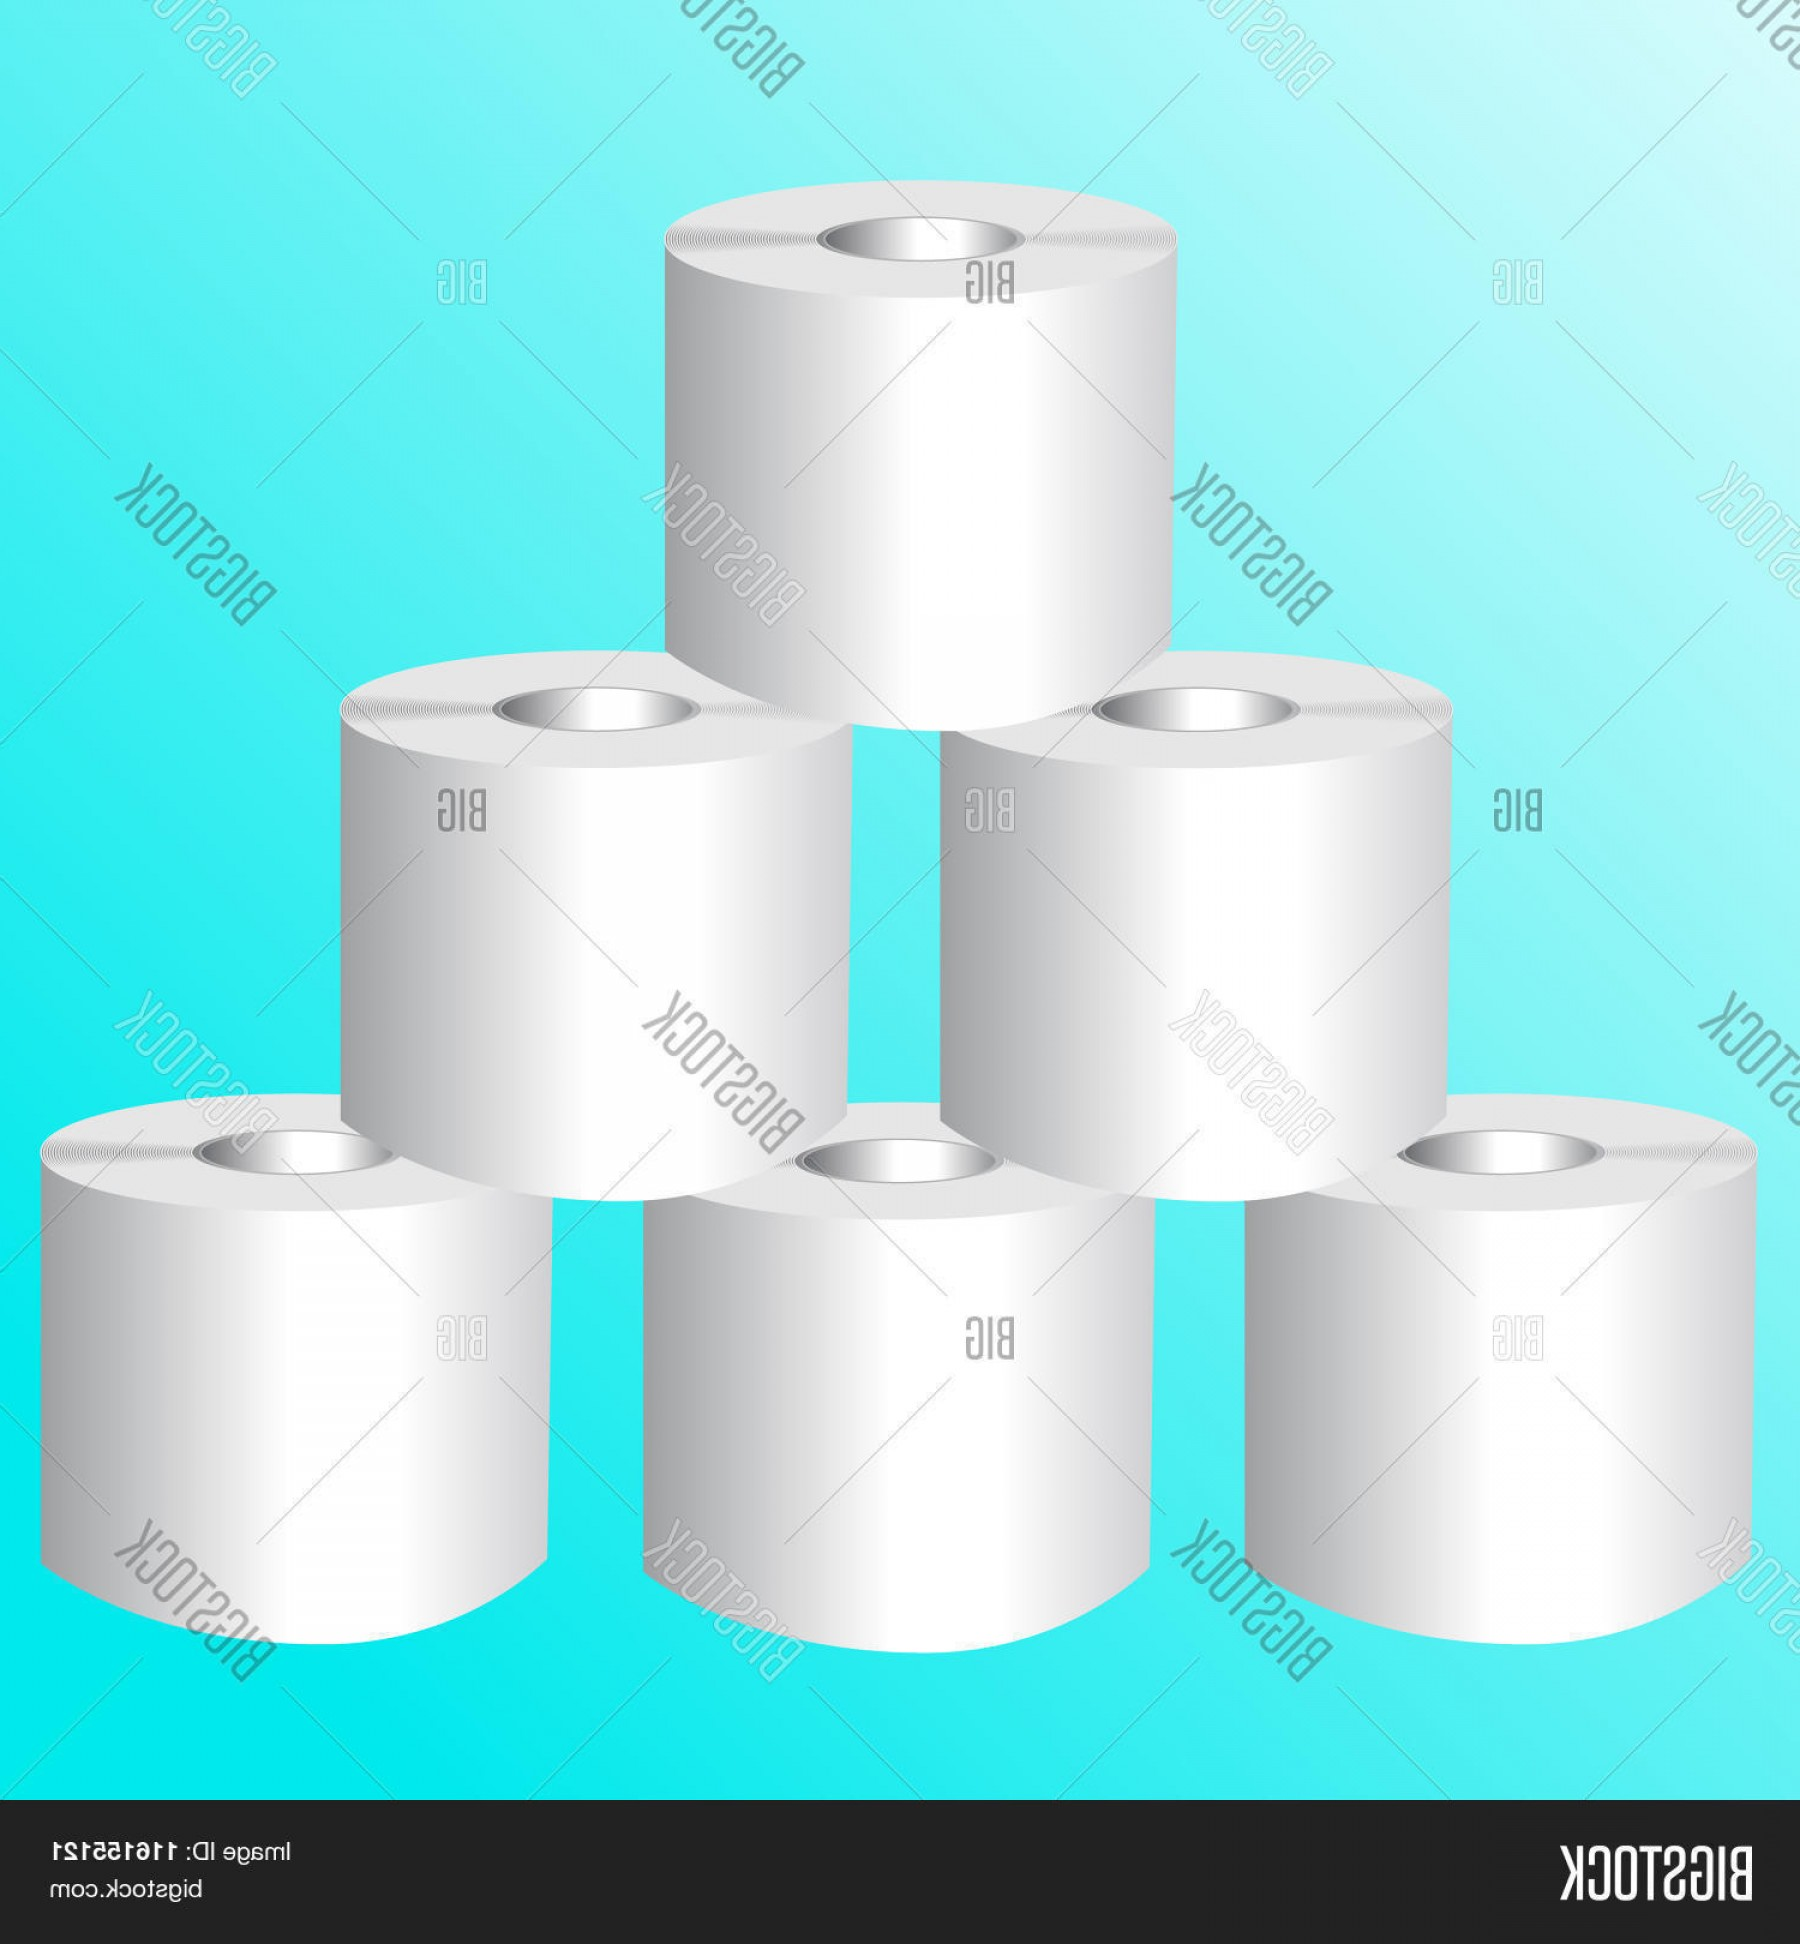 Toilet Paper Vector: Stock Vector Toilet Roll Vector Illustrator